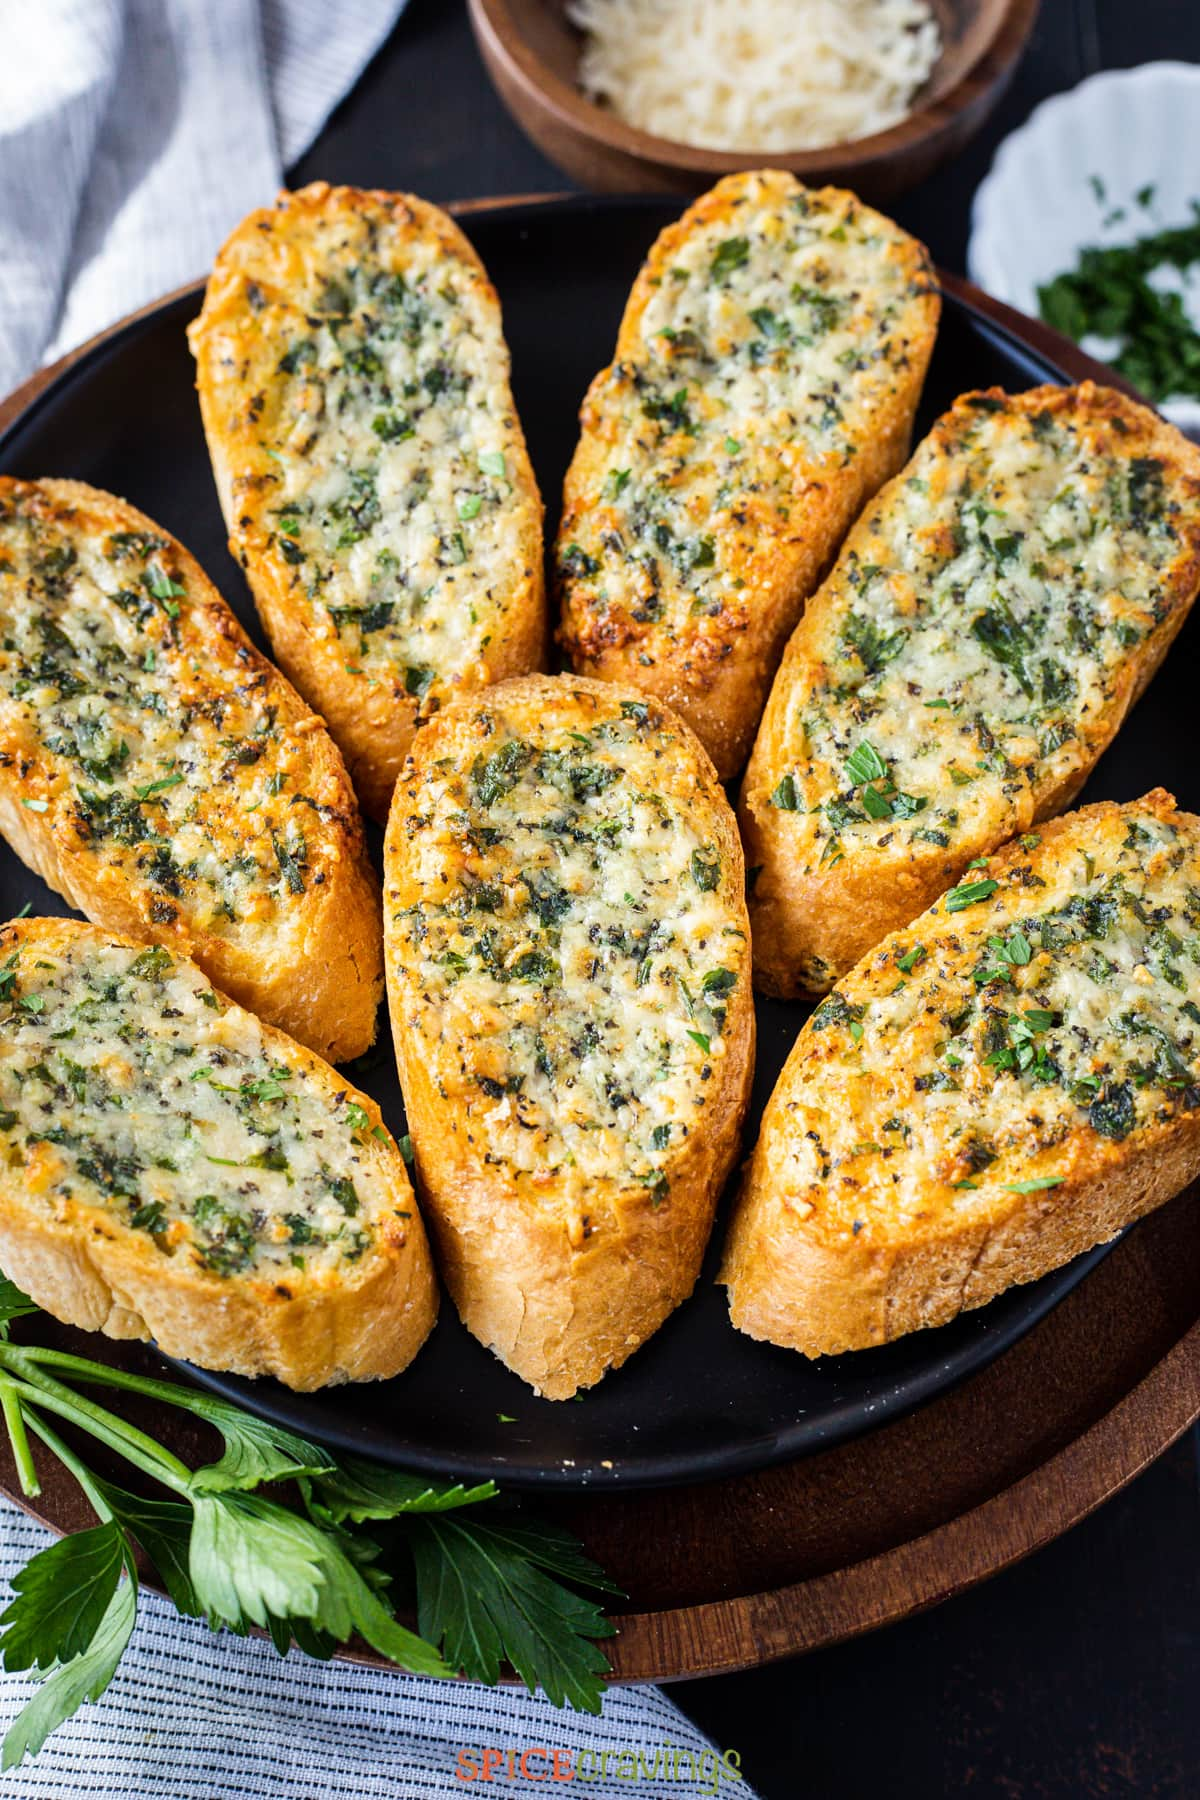 air fried garlic bread garnished with parsley on a plate